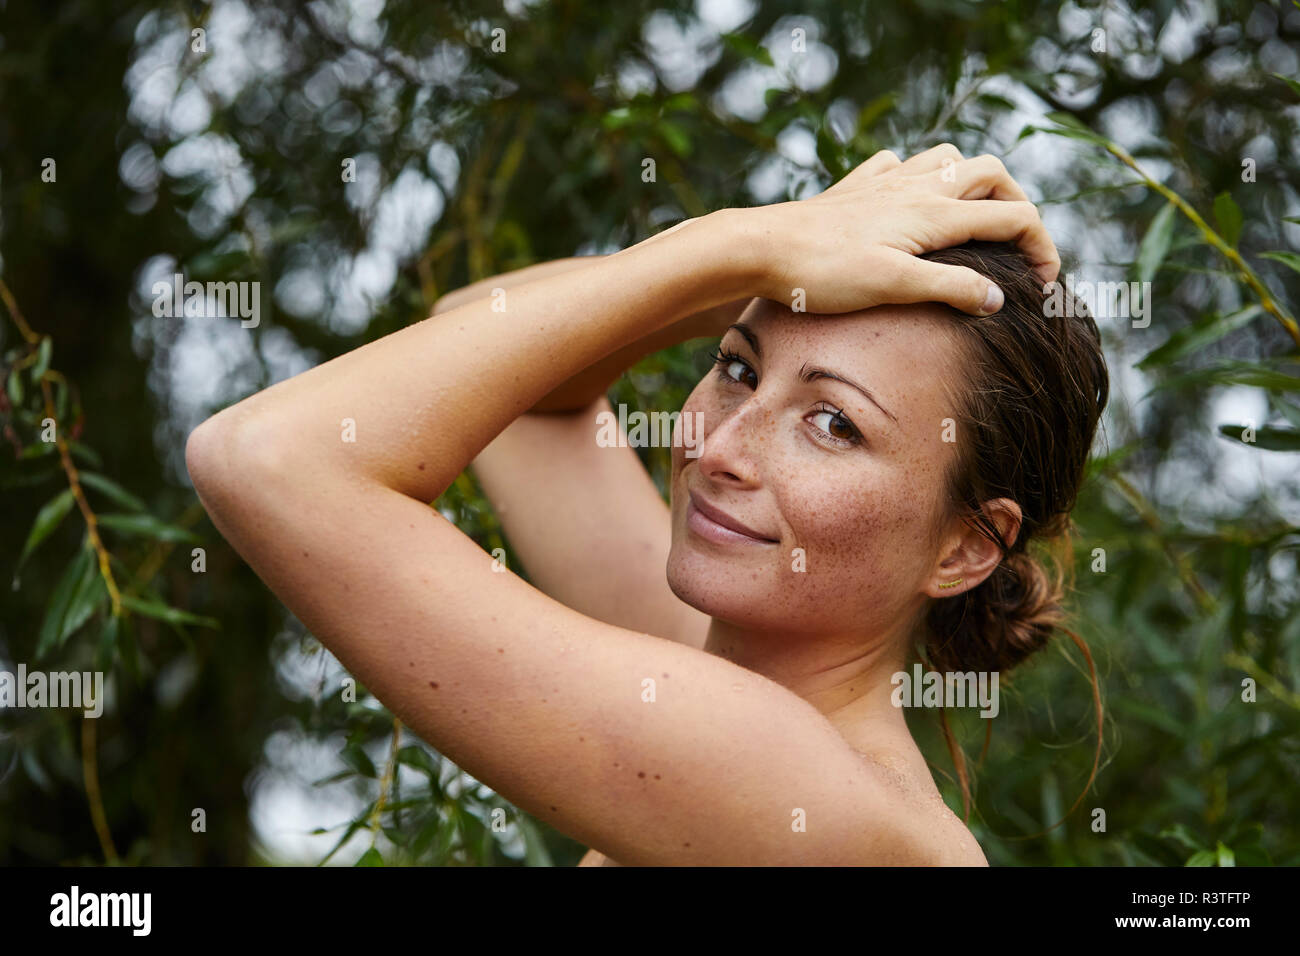 Portrait of freckled young woman in nature Stock Photo